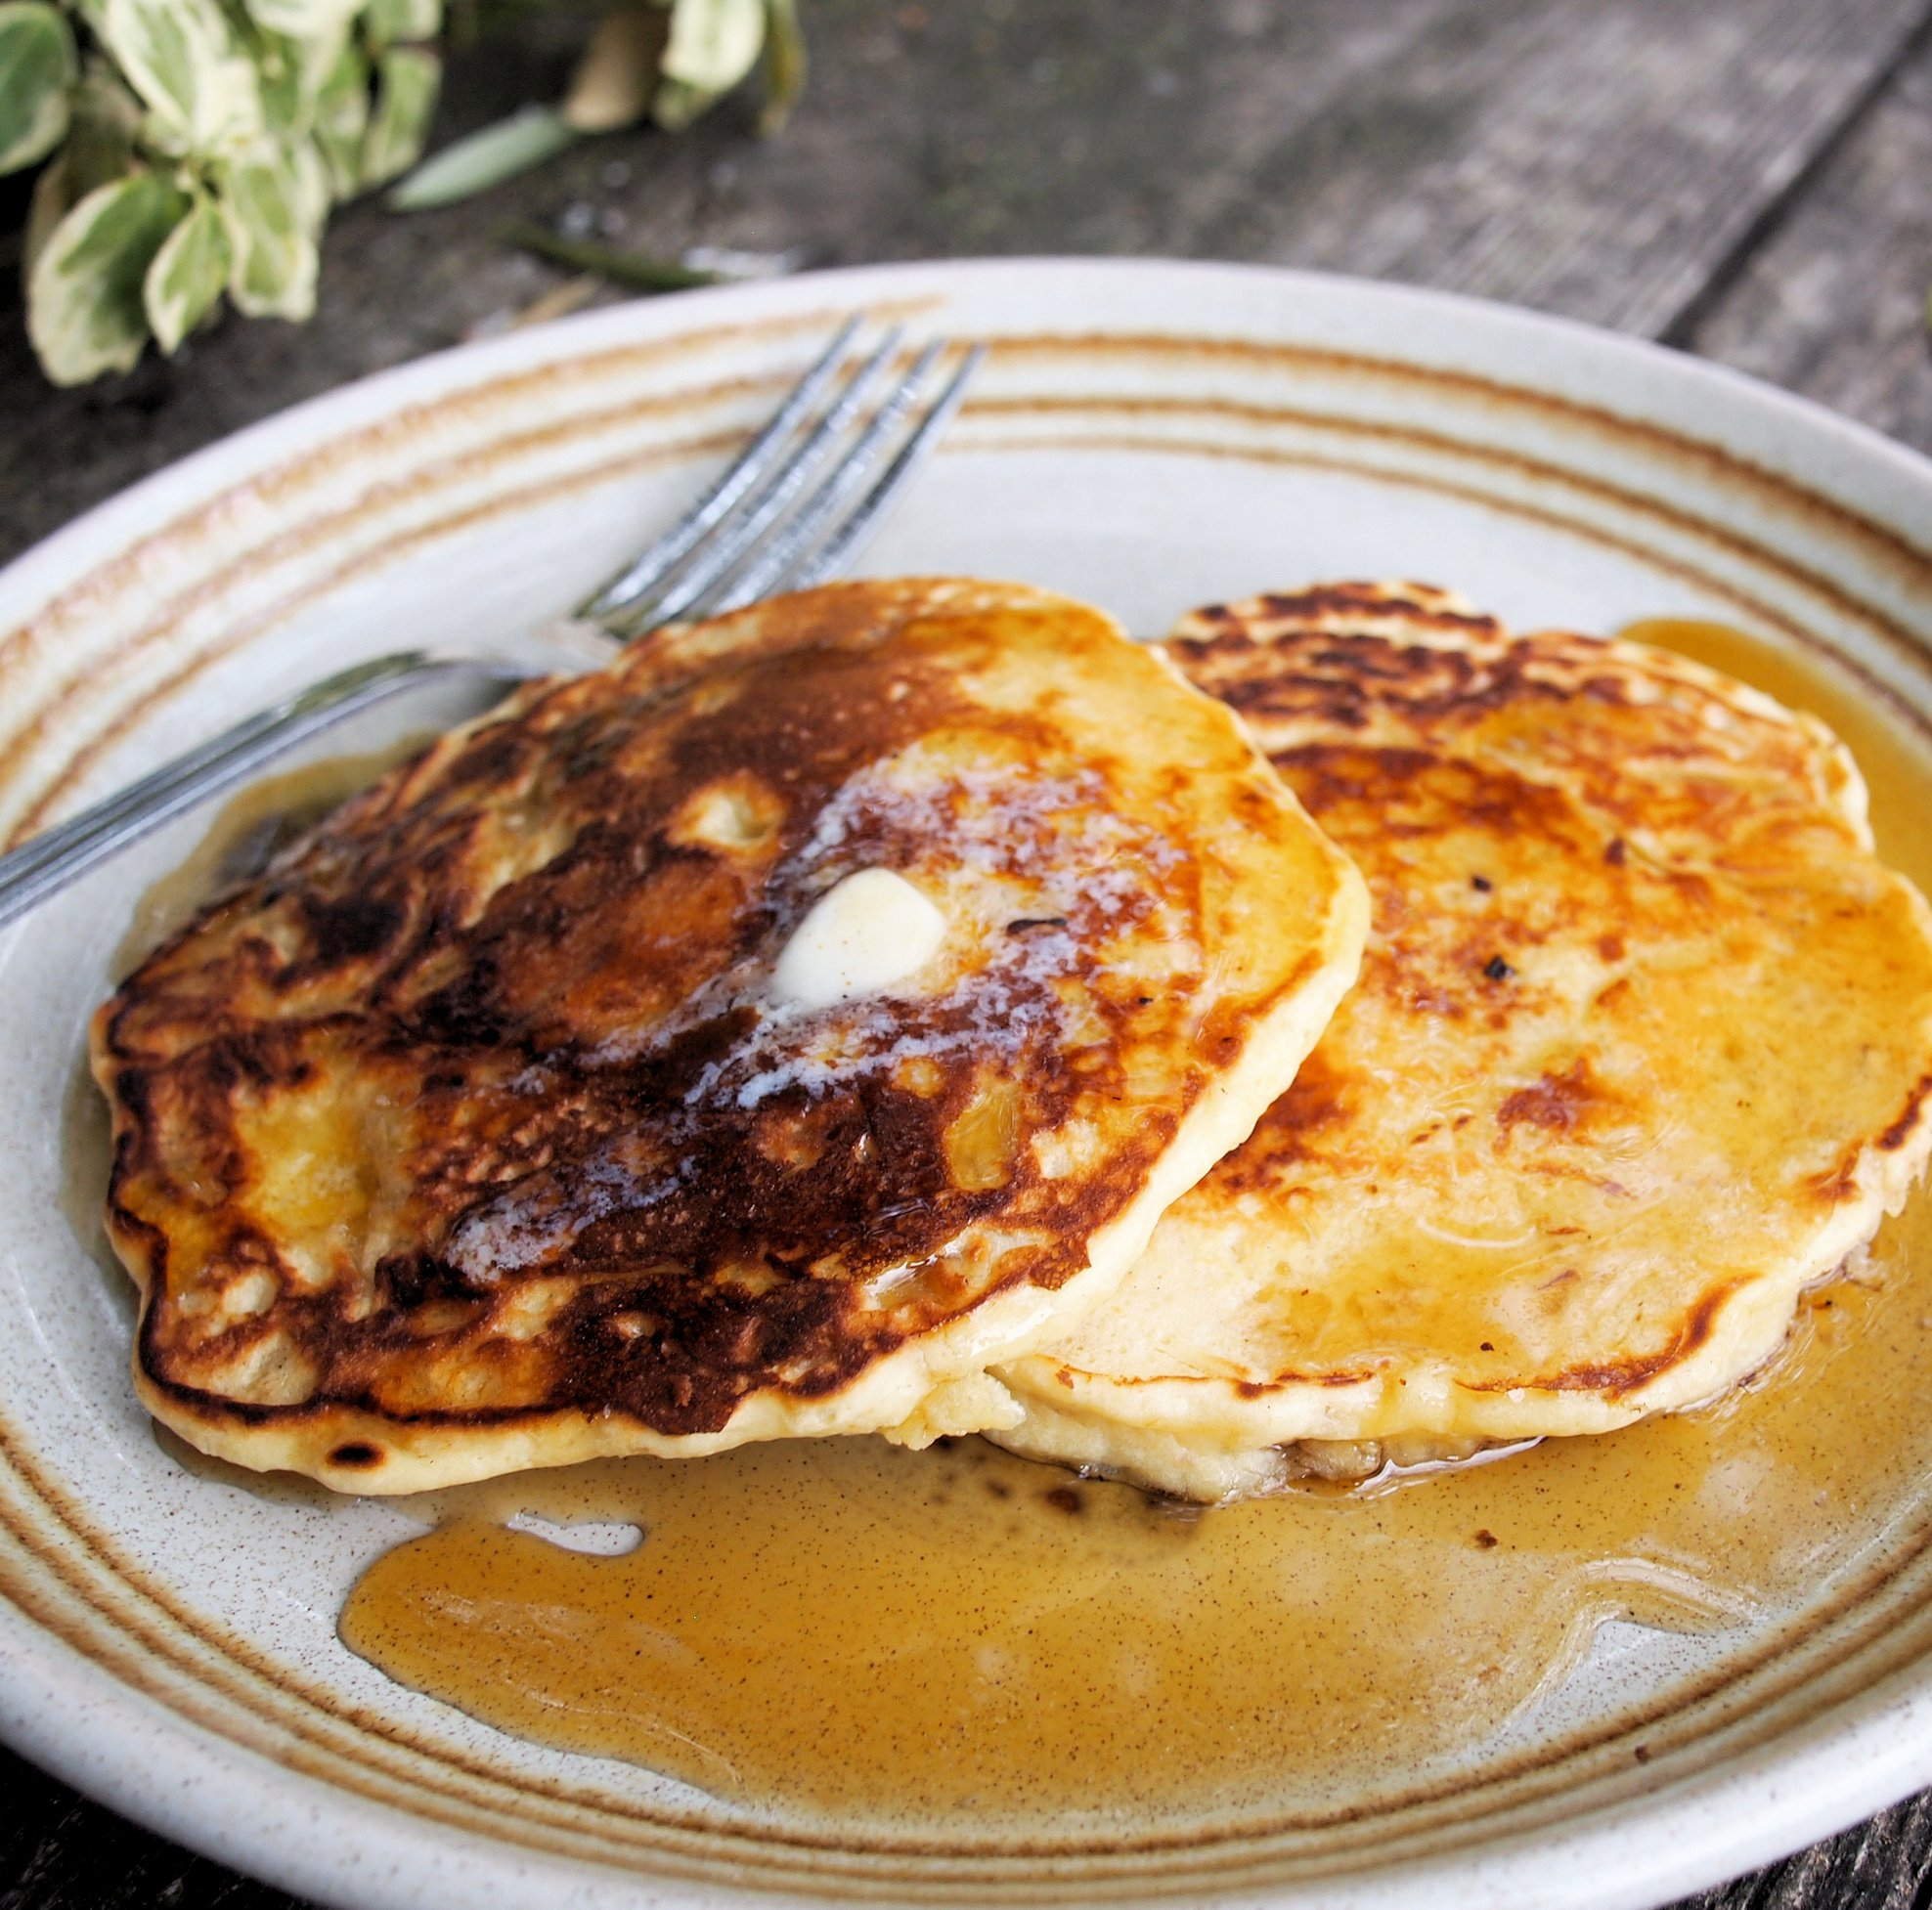 Celebrate better breakfast week with new zealand honey and my fluffy celebrate better breakfast week with new zealand honey and my fluffy porridge pancakes recipe forumfinder Choice Image